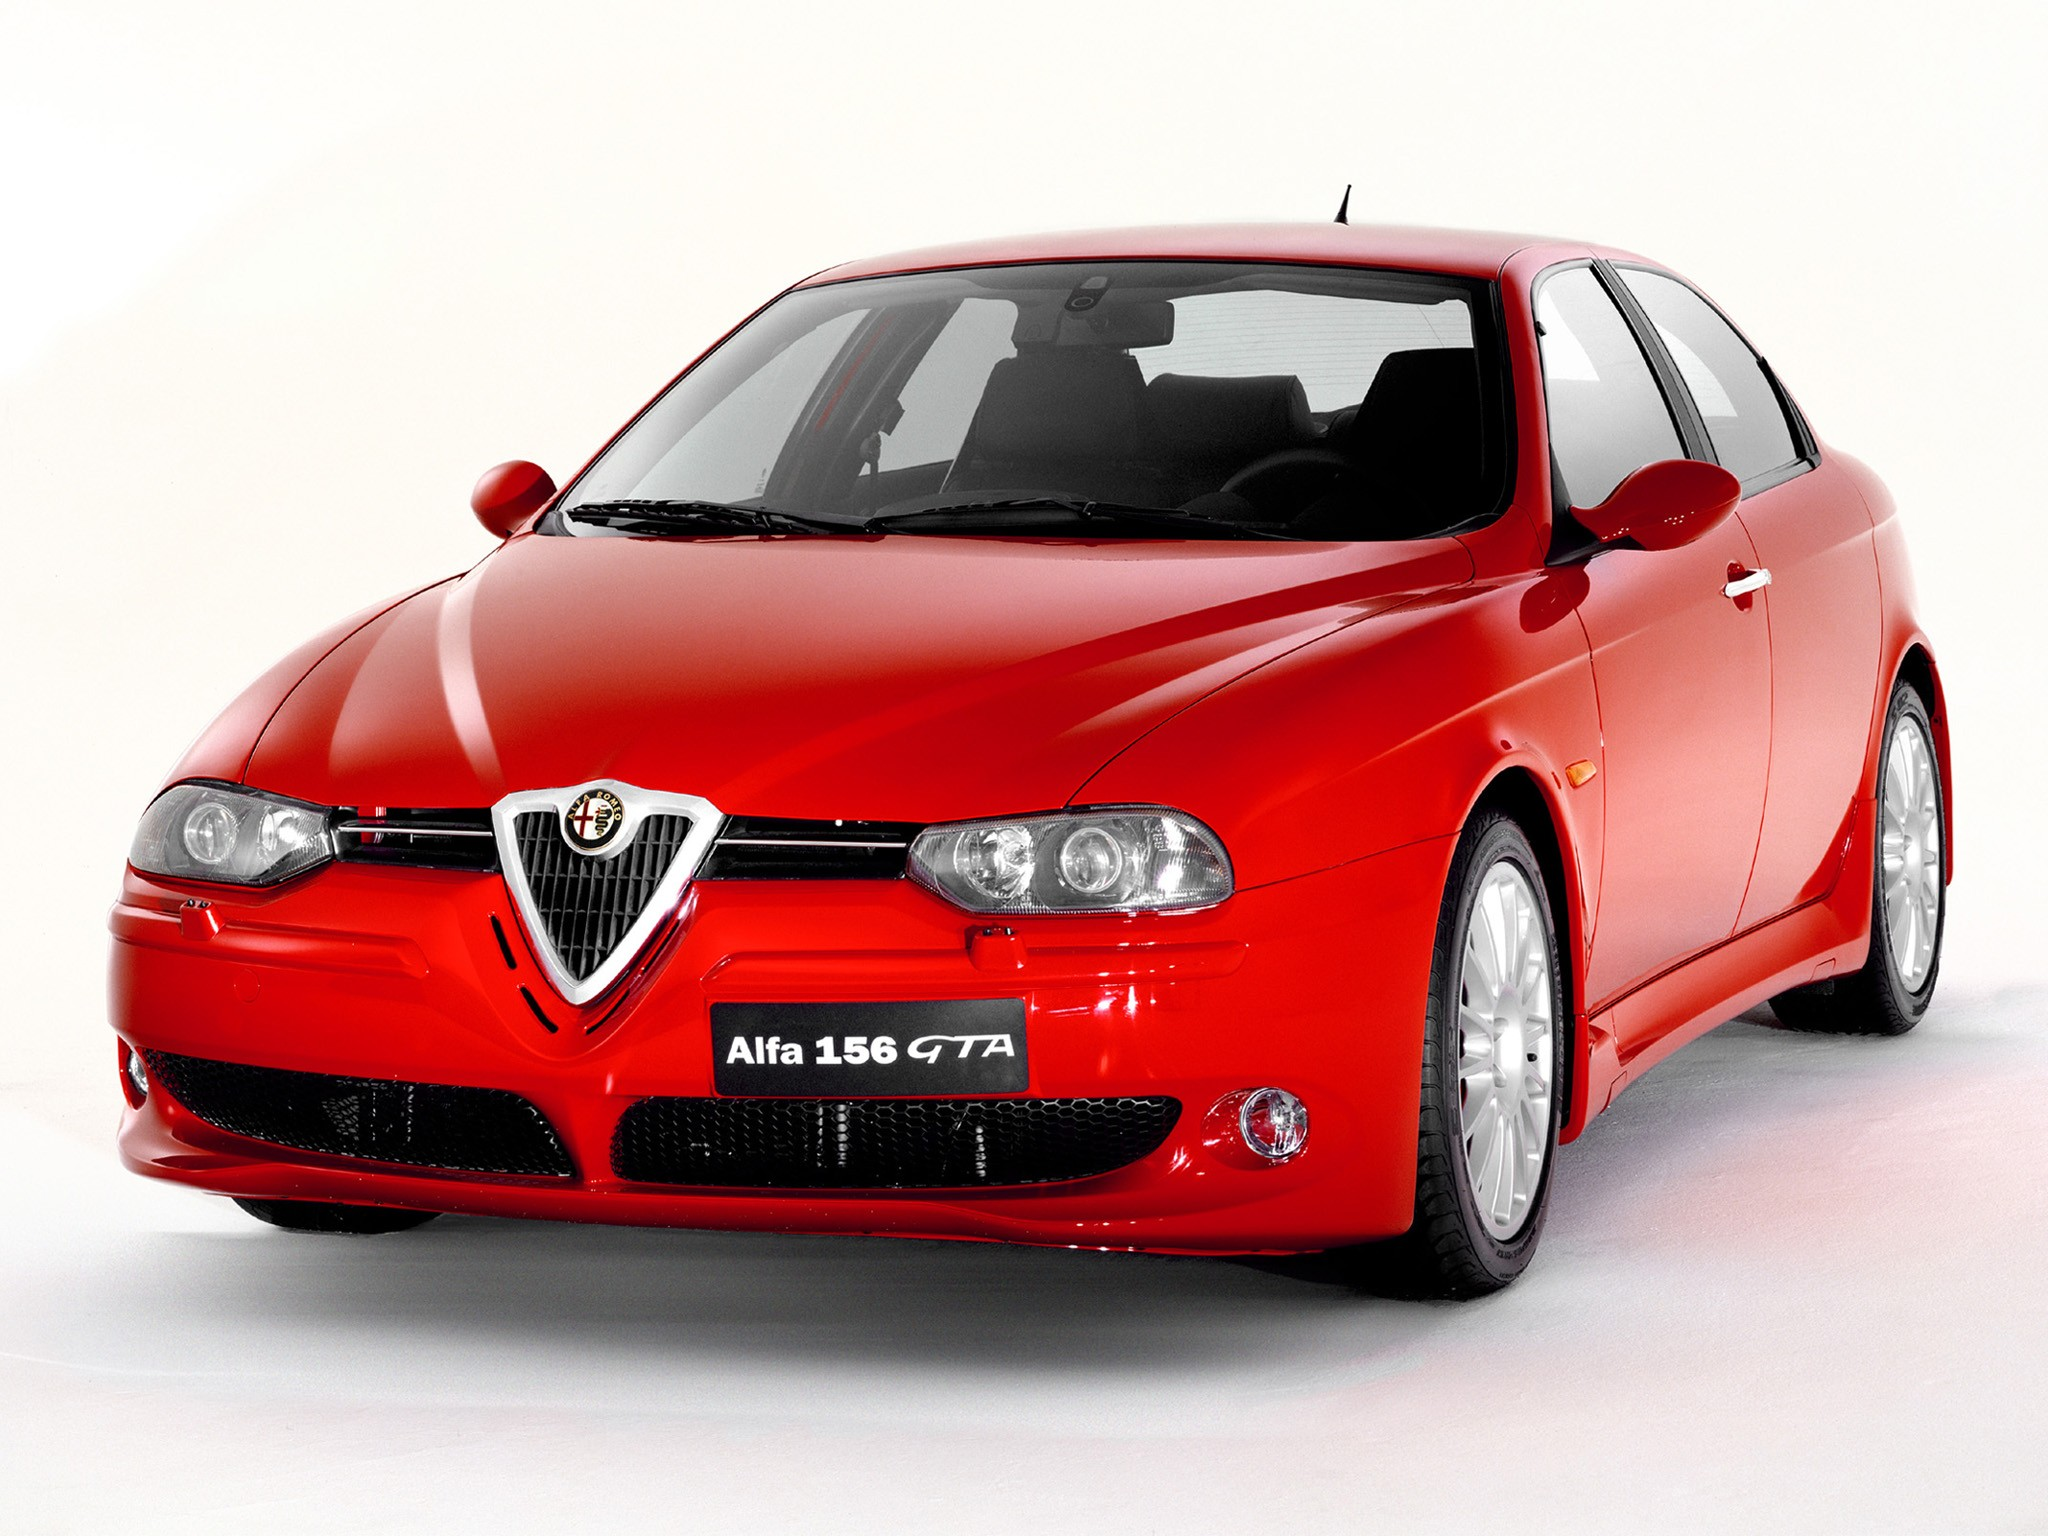 Gta 5 Cars Wallpaper Download Alfa Romeo 156 Gta Specs 2001 2002 2003 2004 2005